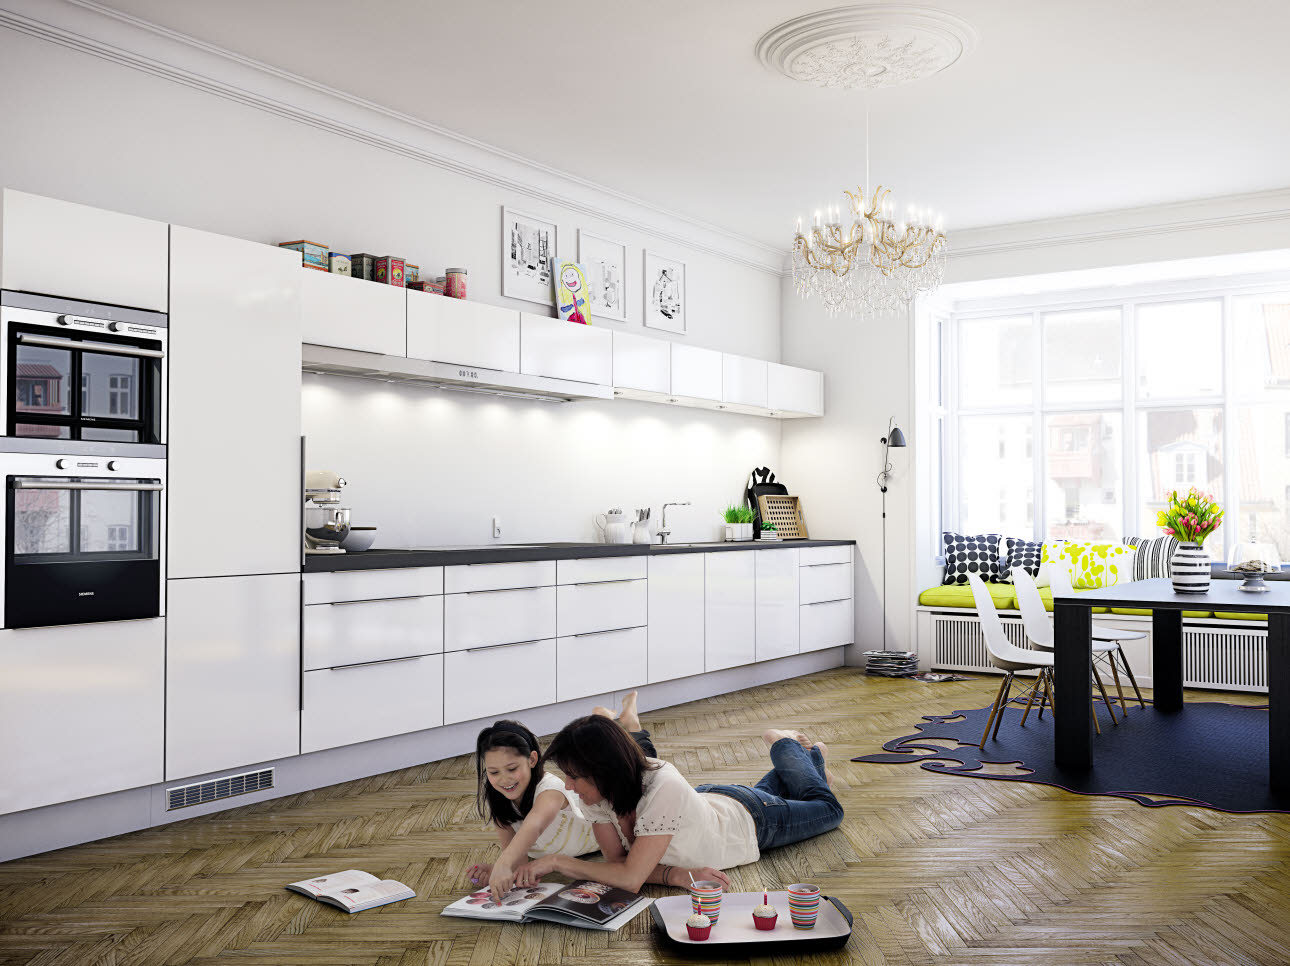 Classic white kitchen for every purpose